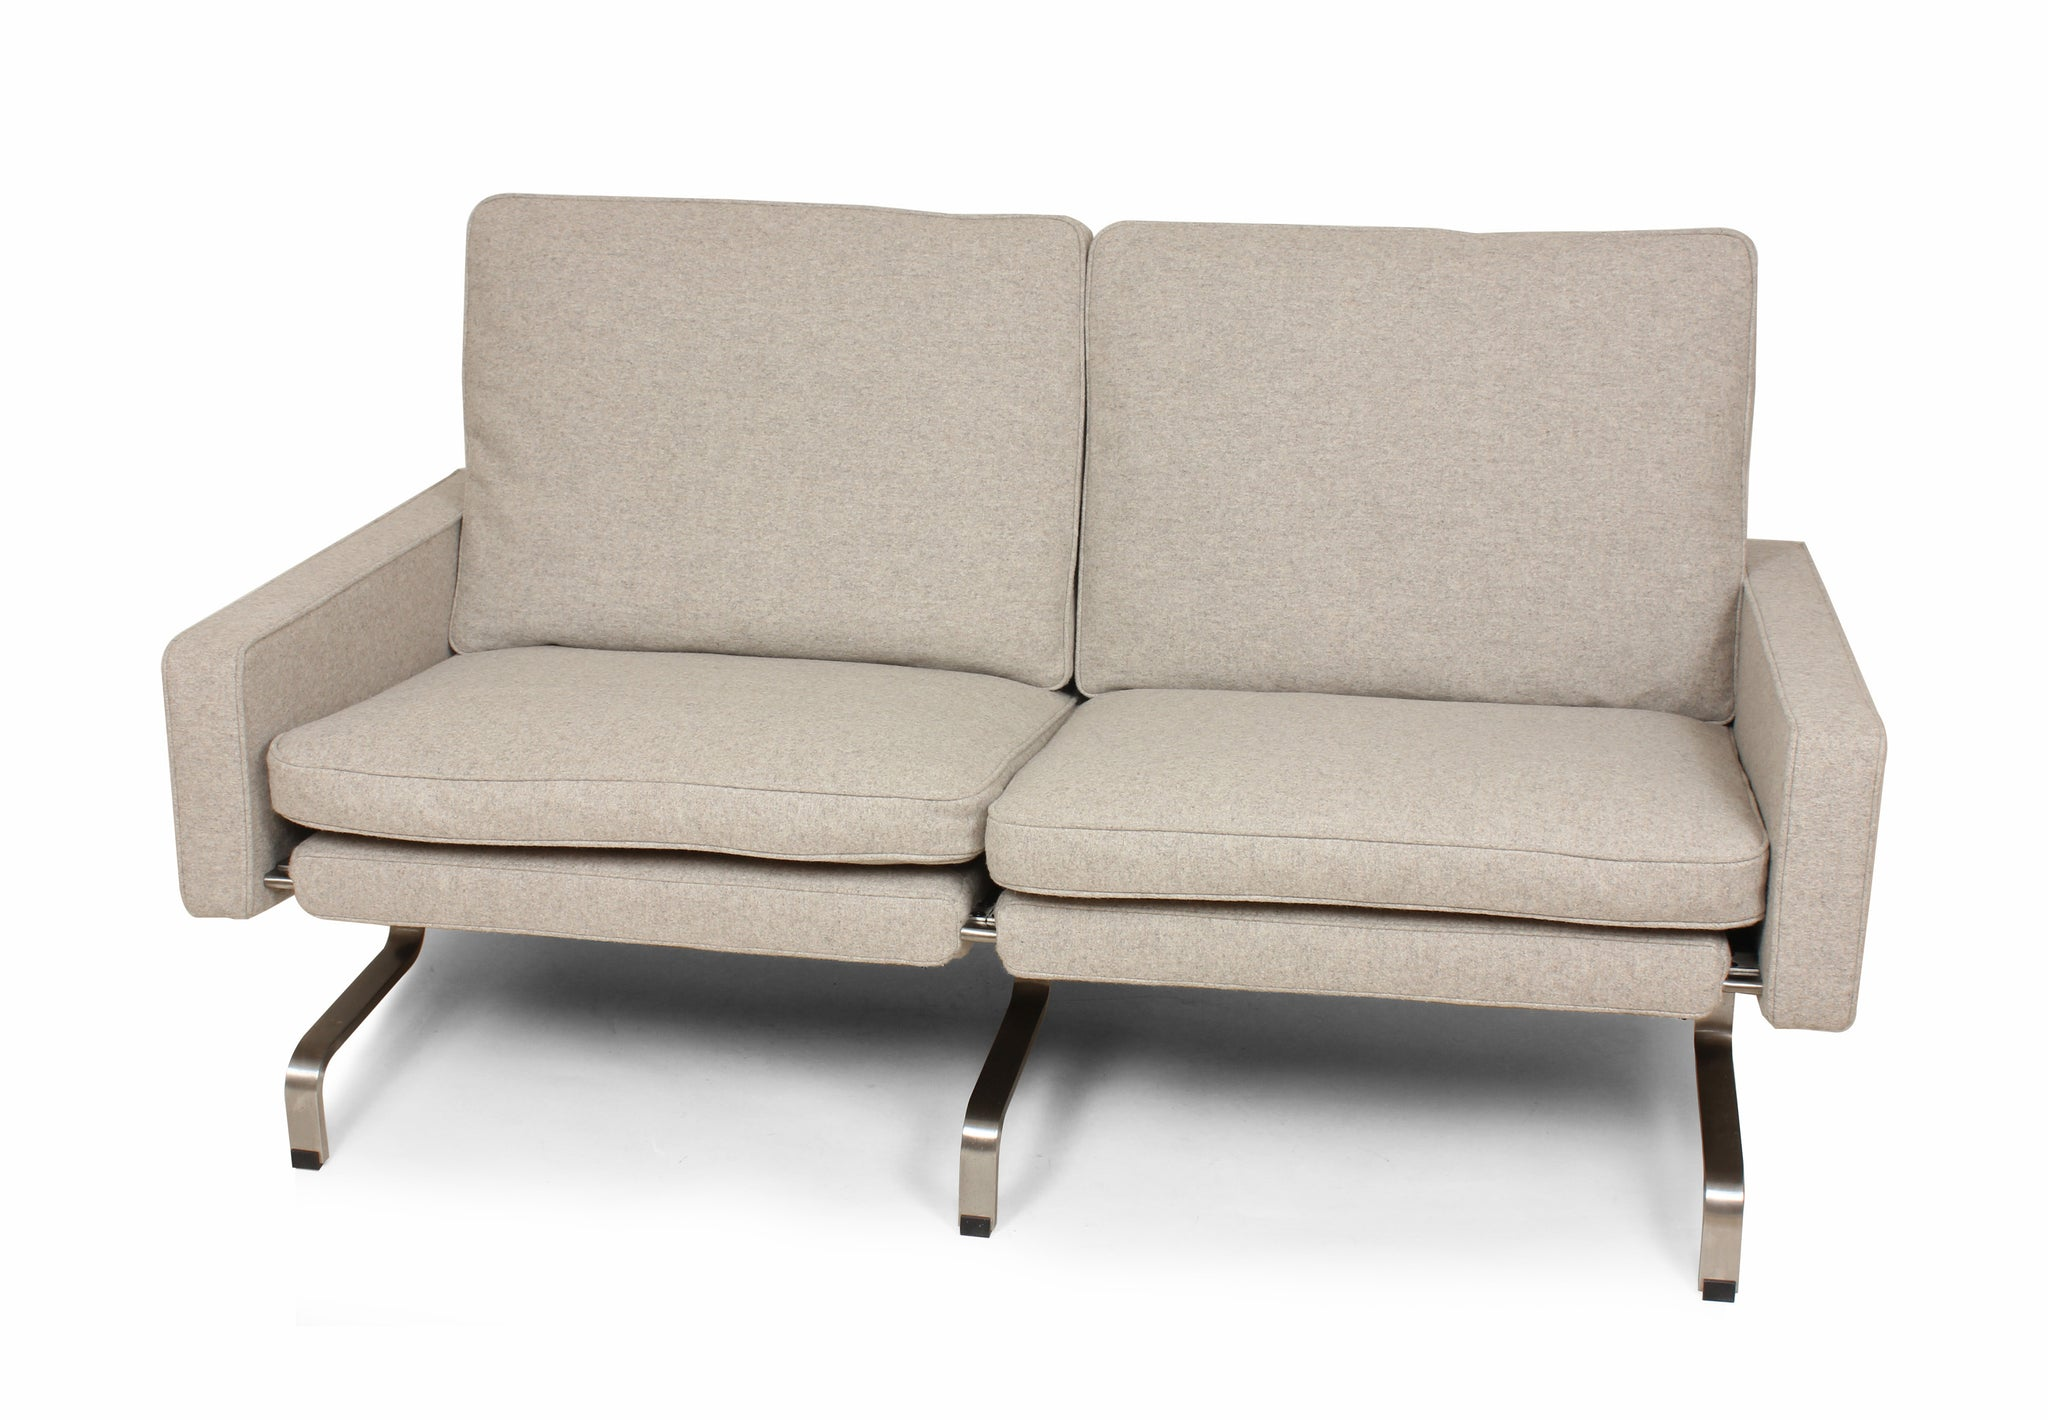 HILLEROD SETTEE [FB8682WHEAT]